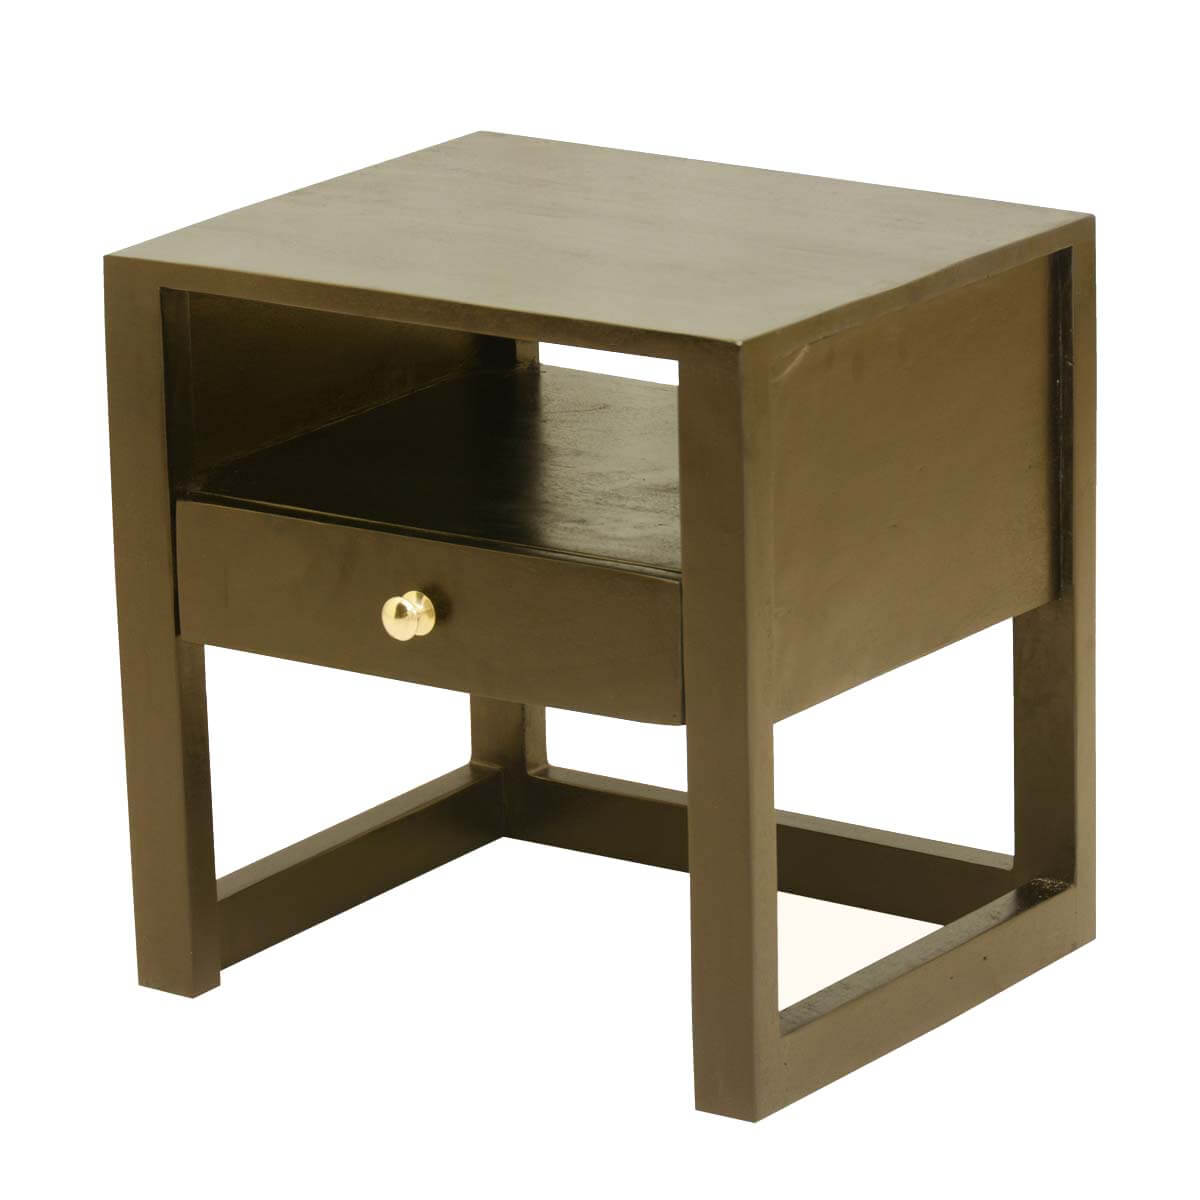 New Age Mango Wood Open Shelf 1 Drawer Nightstand